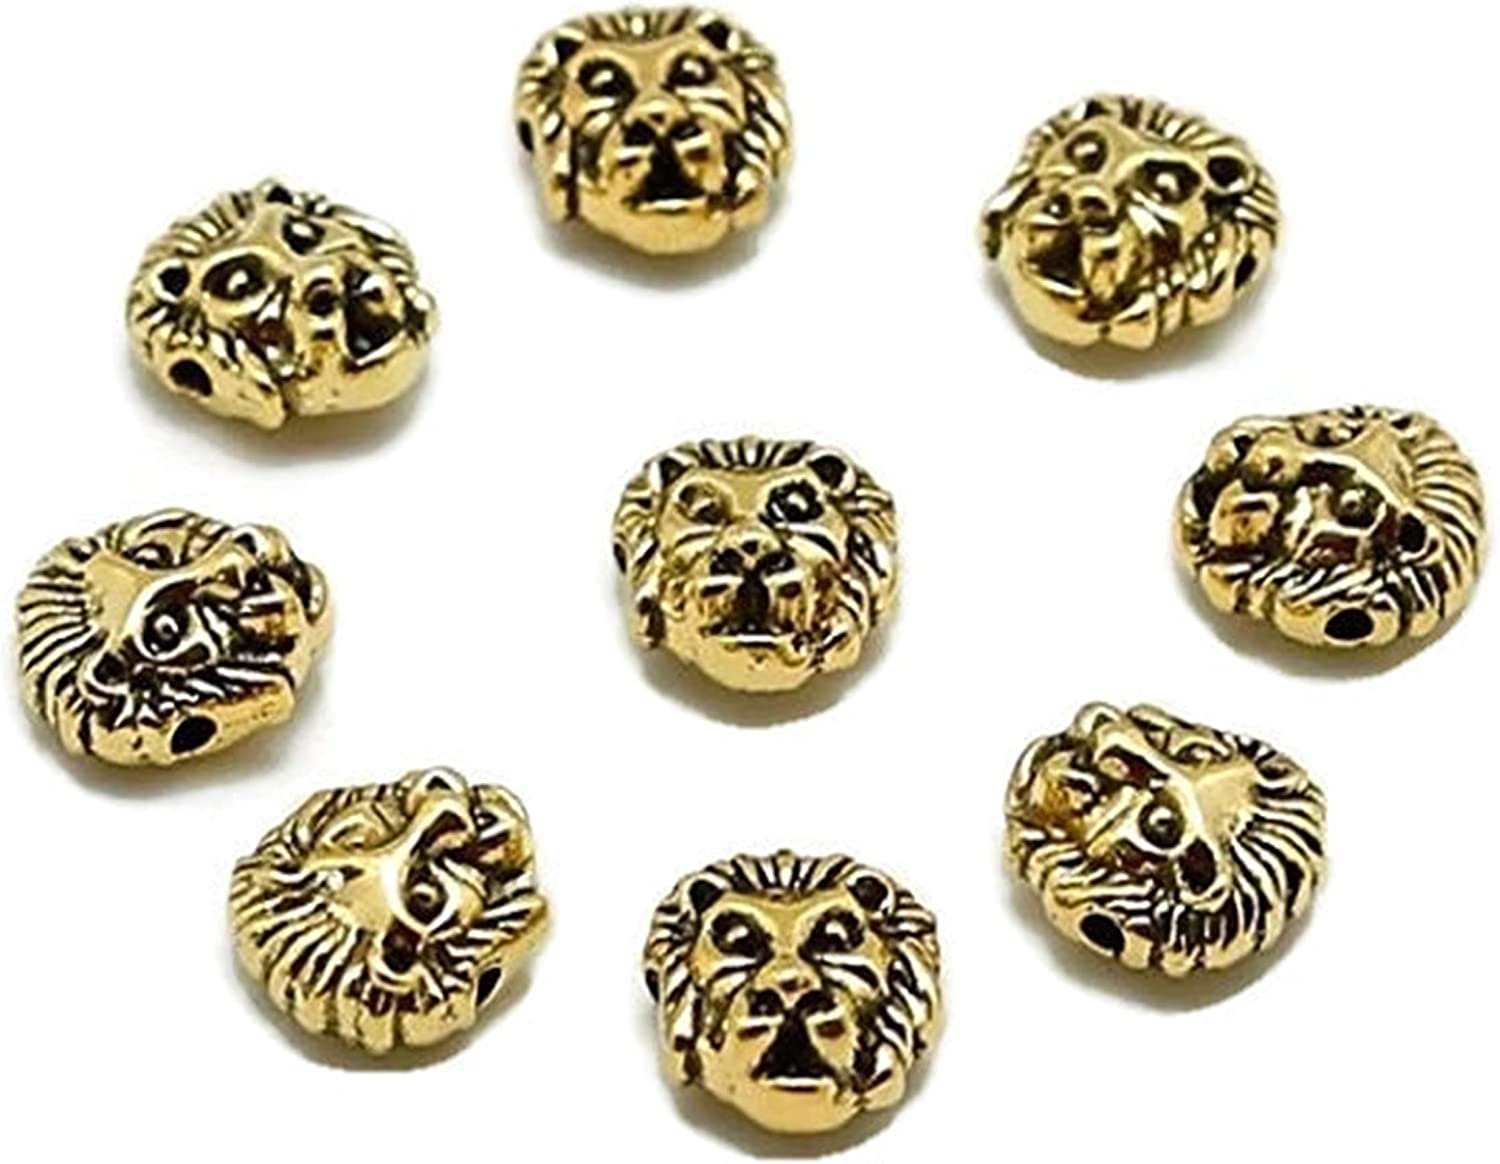 10 Pcs Vintage Metal Bead Lion Head Spacer Beads Charms DIY Bracelet Finding